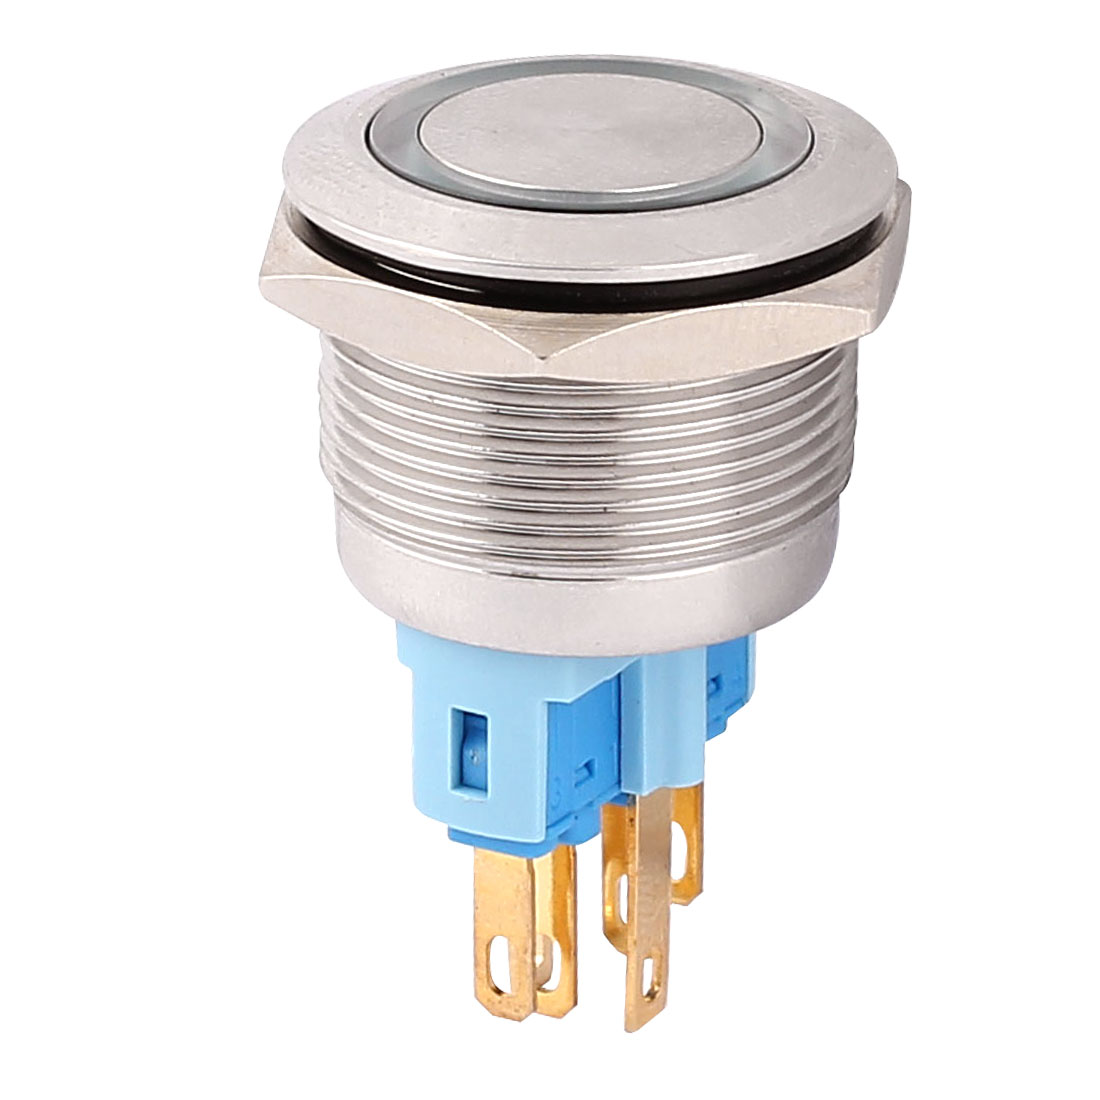 DC 24V Green LED Light 22mm Mounted Thread 6 Pins DPST NO/NC Momentary Push Button Switch